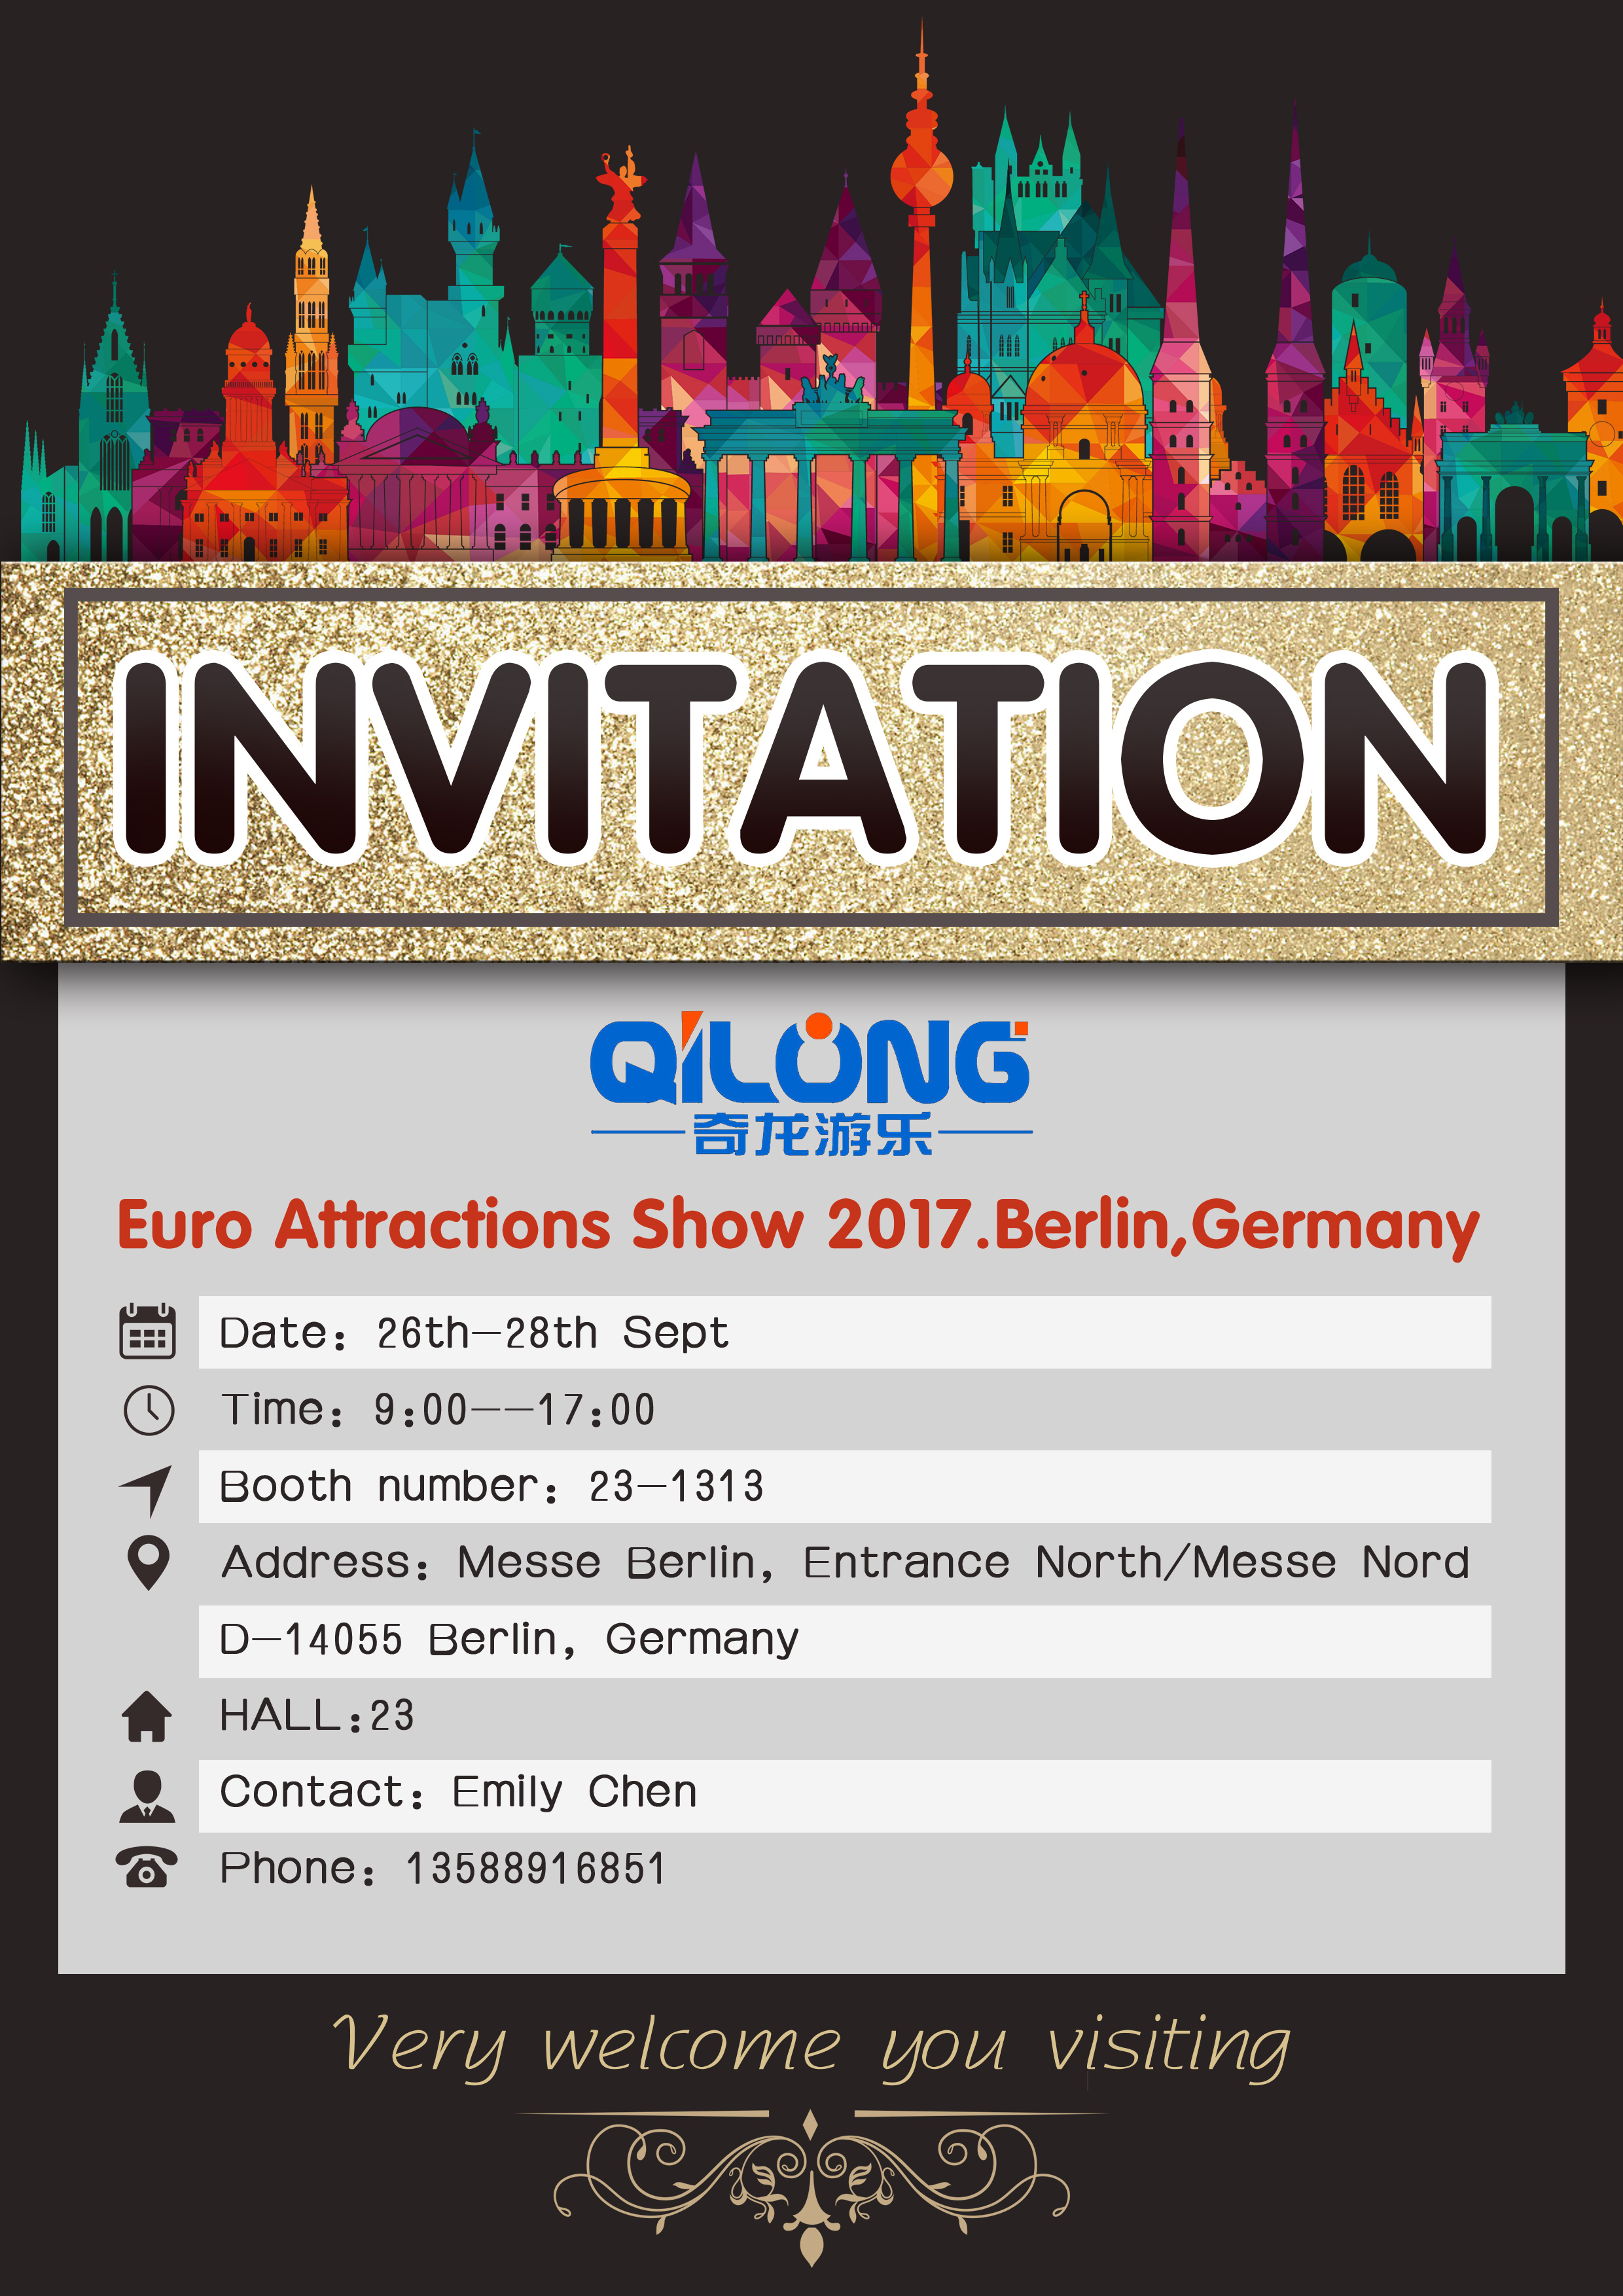 euro attractions show